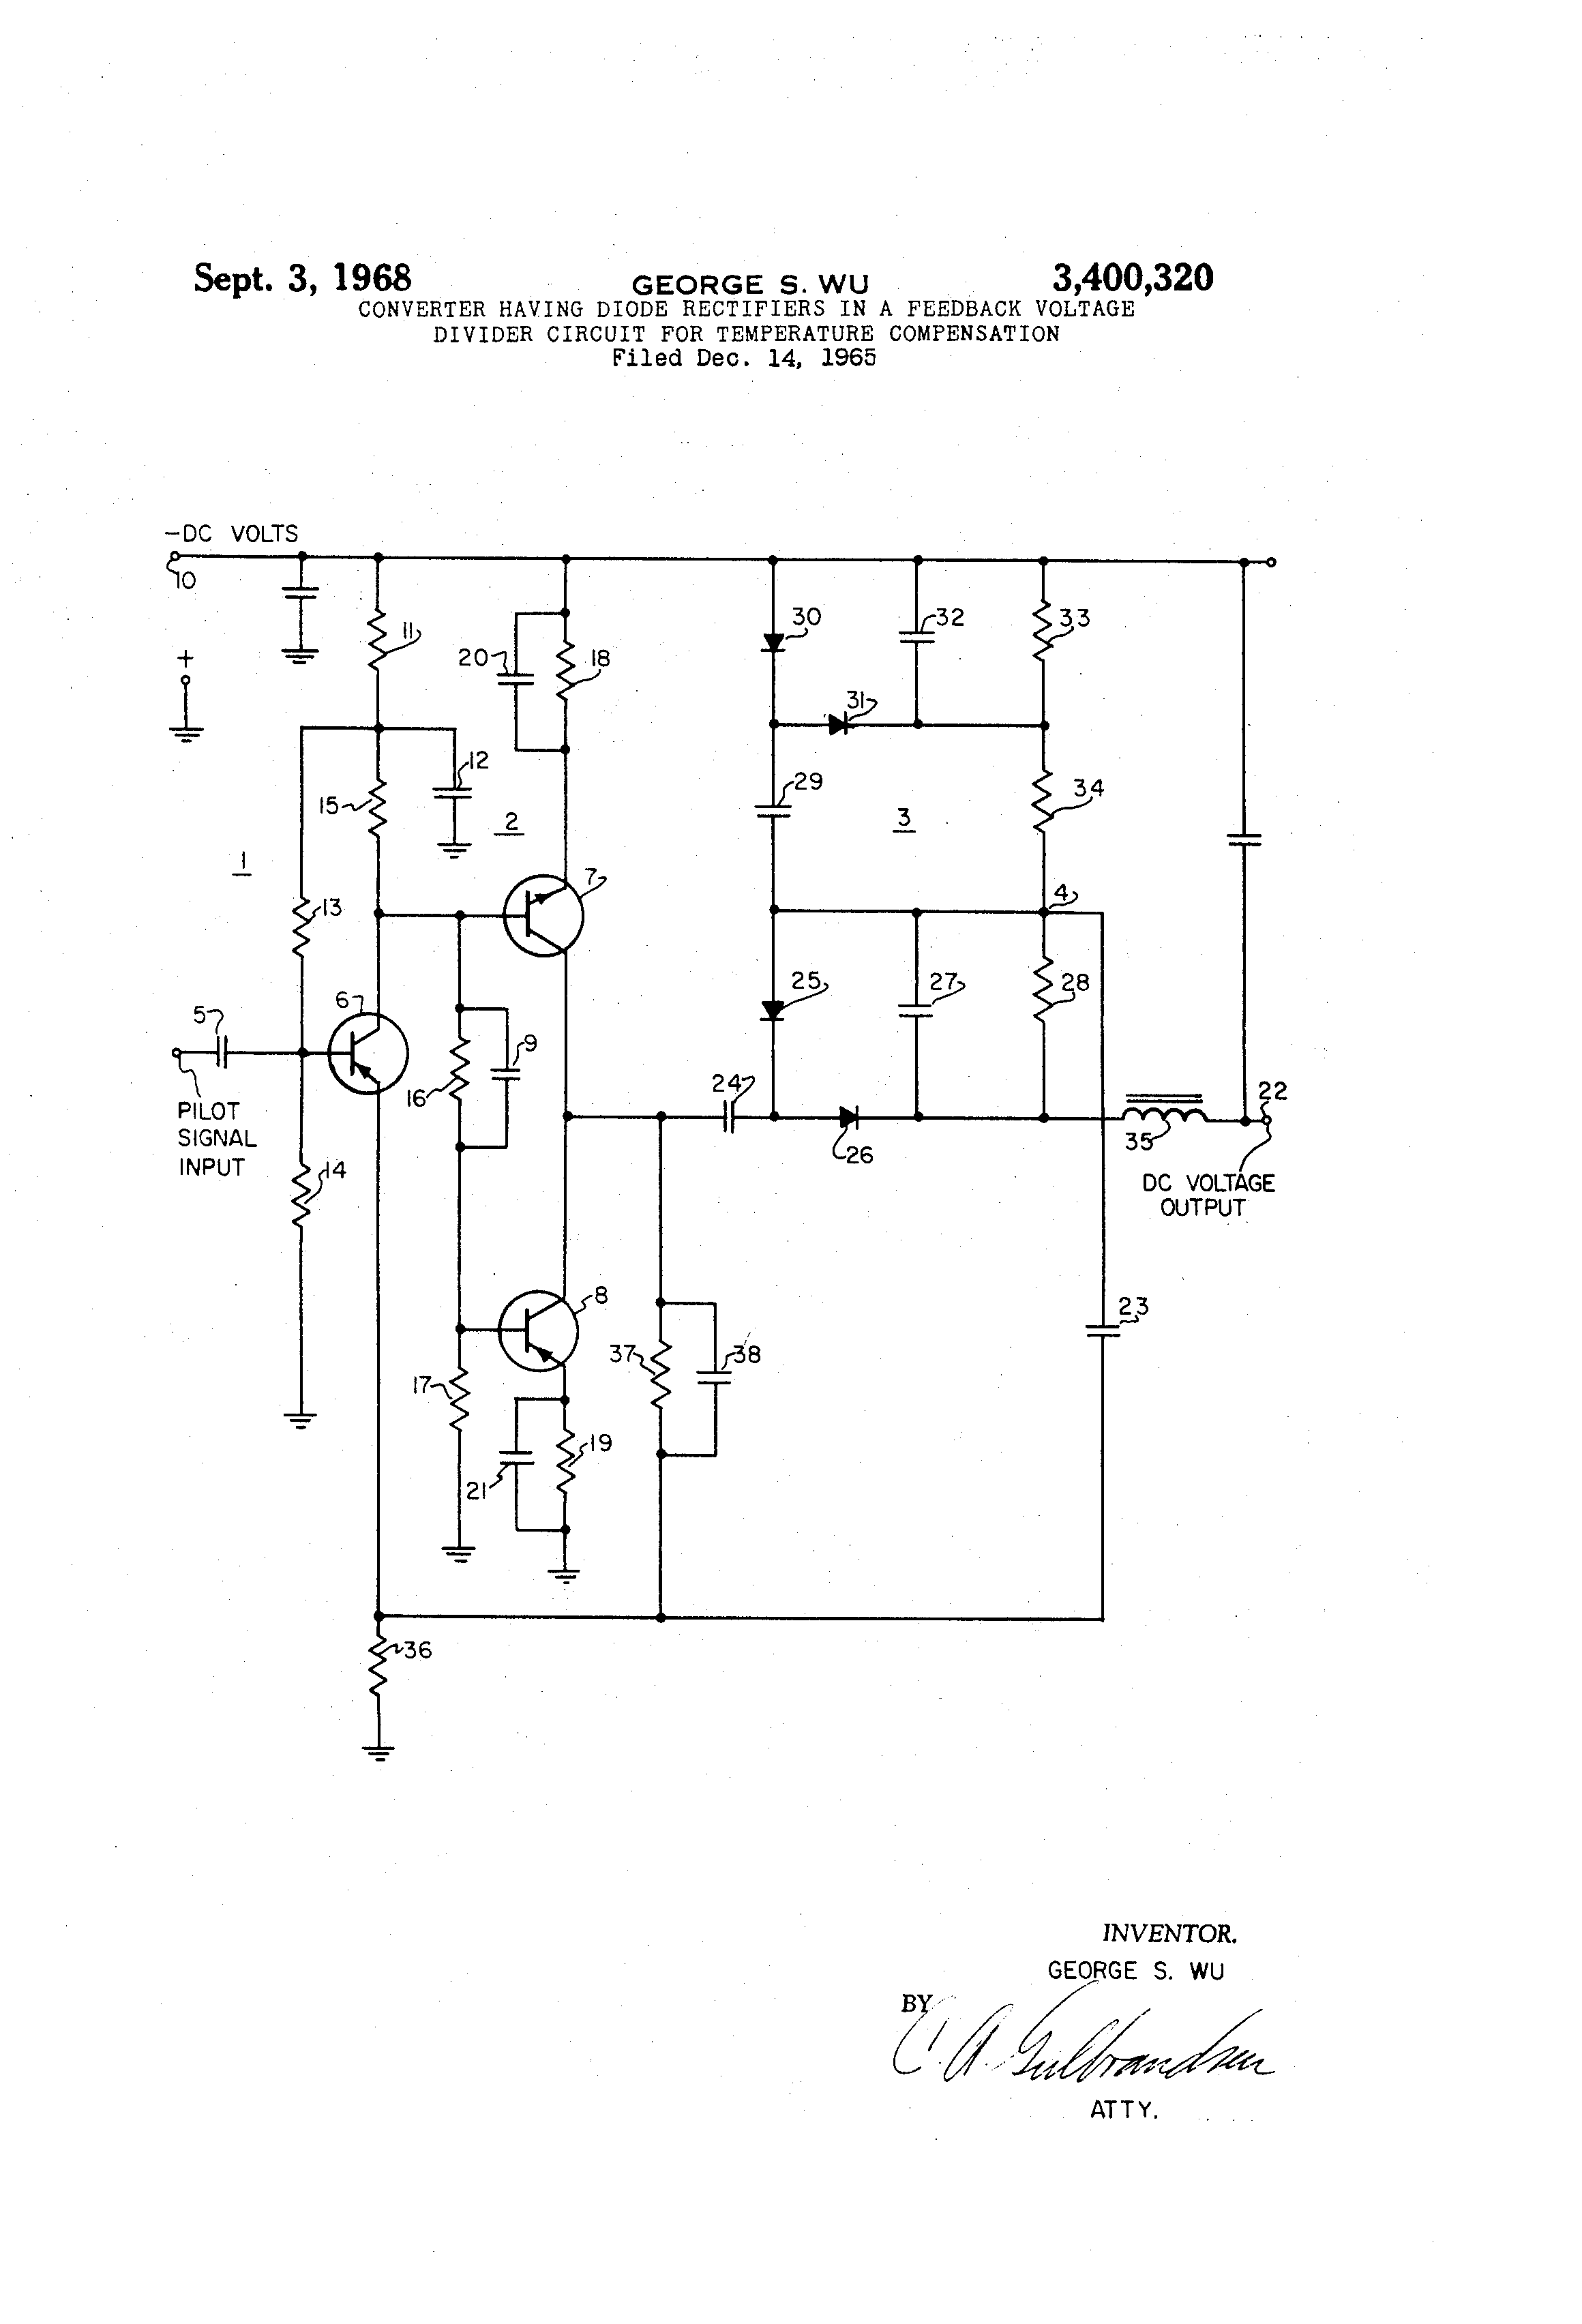 Brevet Us3400320 Converter Having Diode Rectifiers In A Feedback Voltage Divider Circuit Diagram Patent Drawing